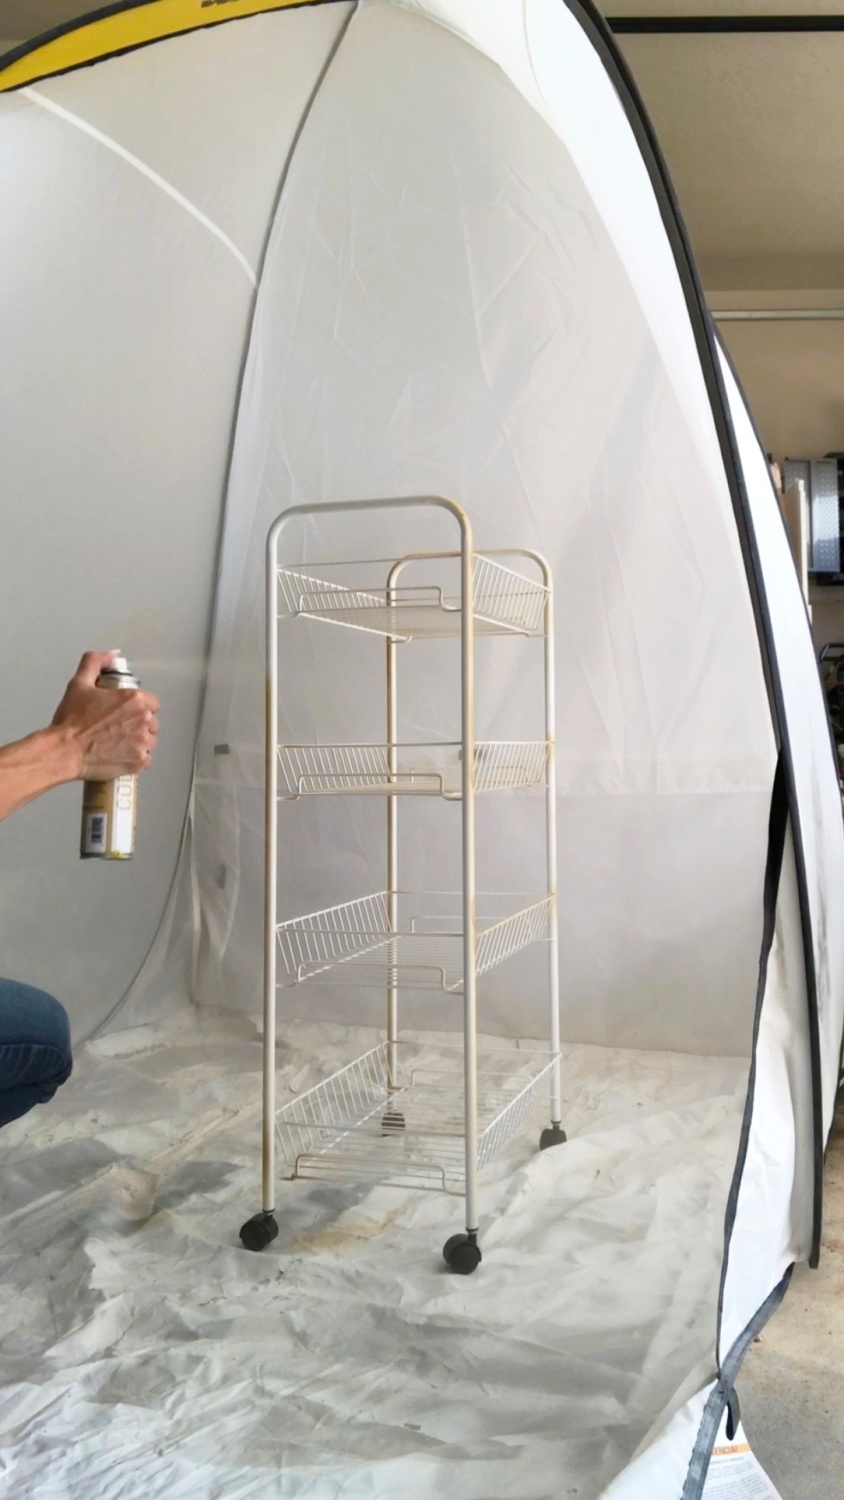 Spray paint your cart using several light coats